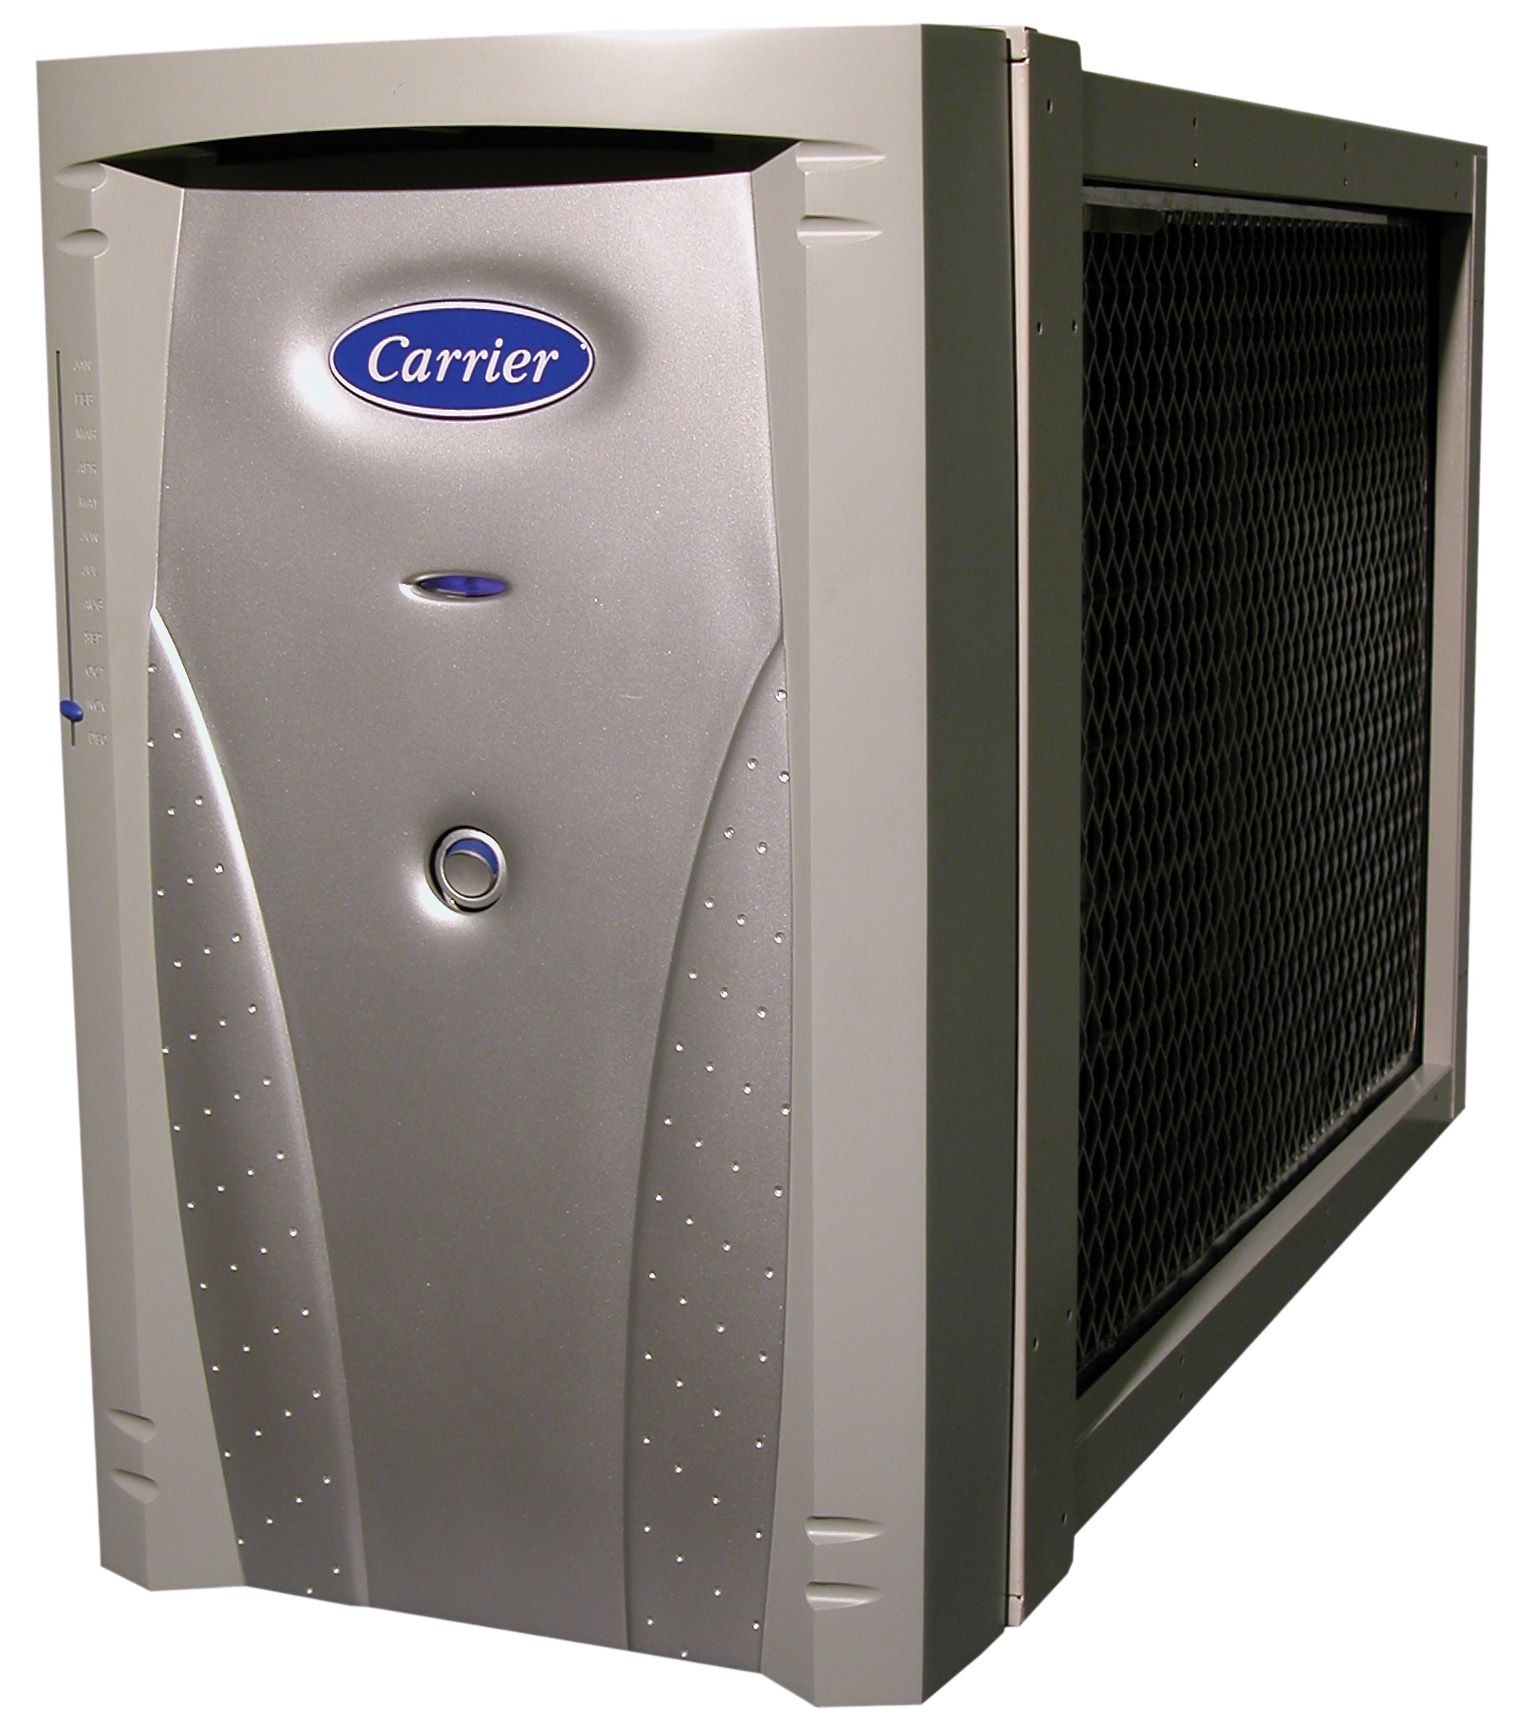 Take 30 off Indoor Air Quality Products such as an air